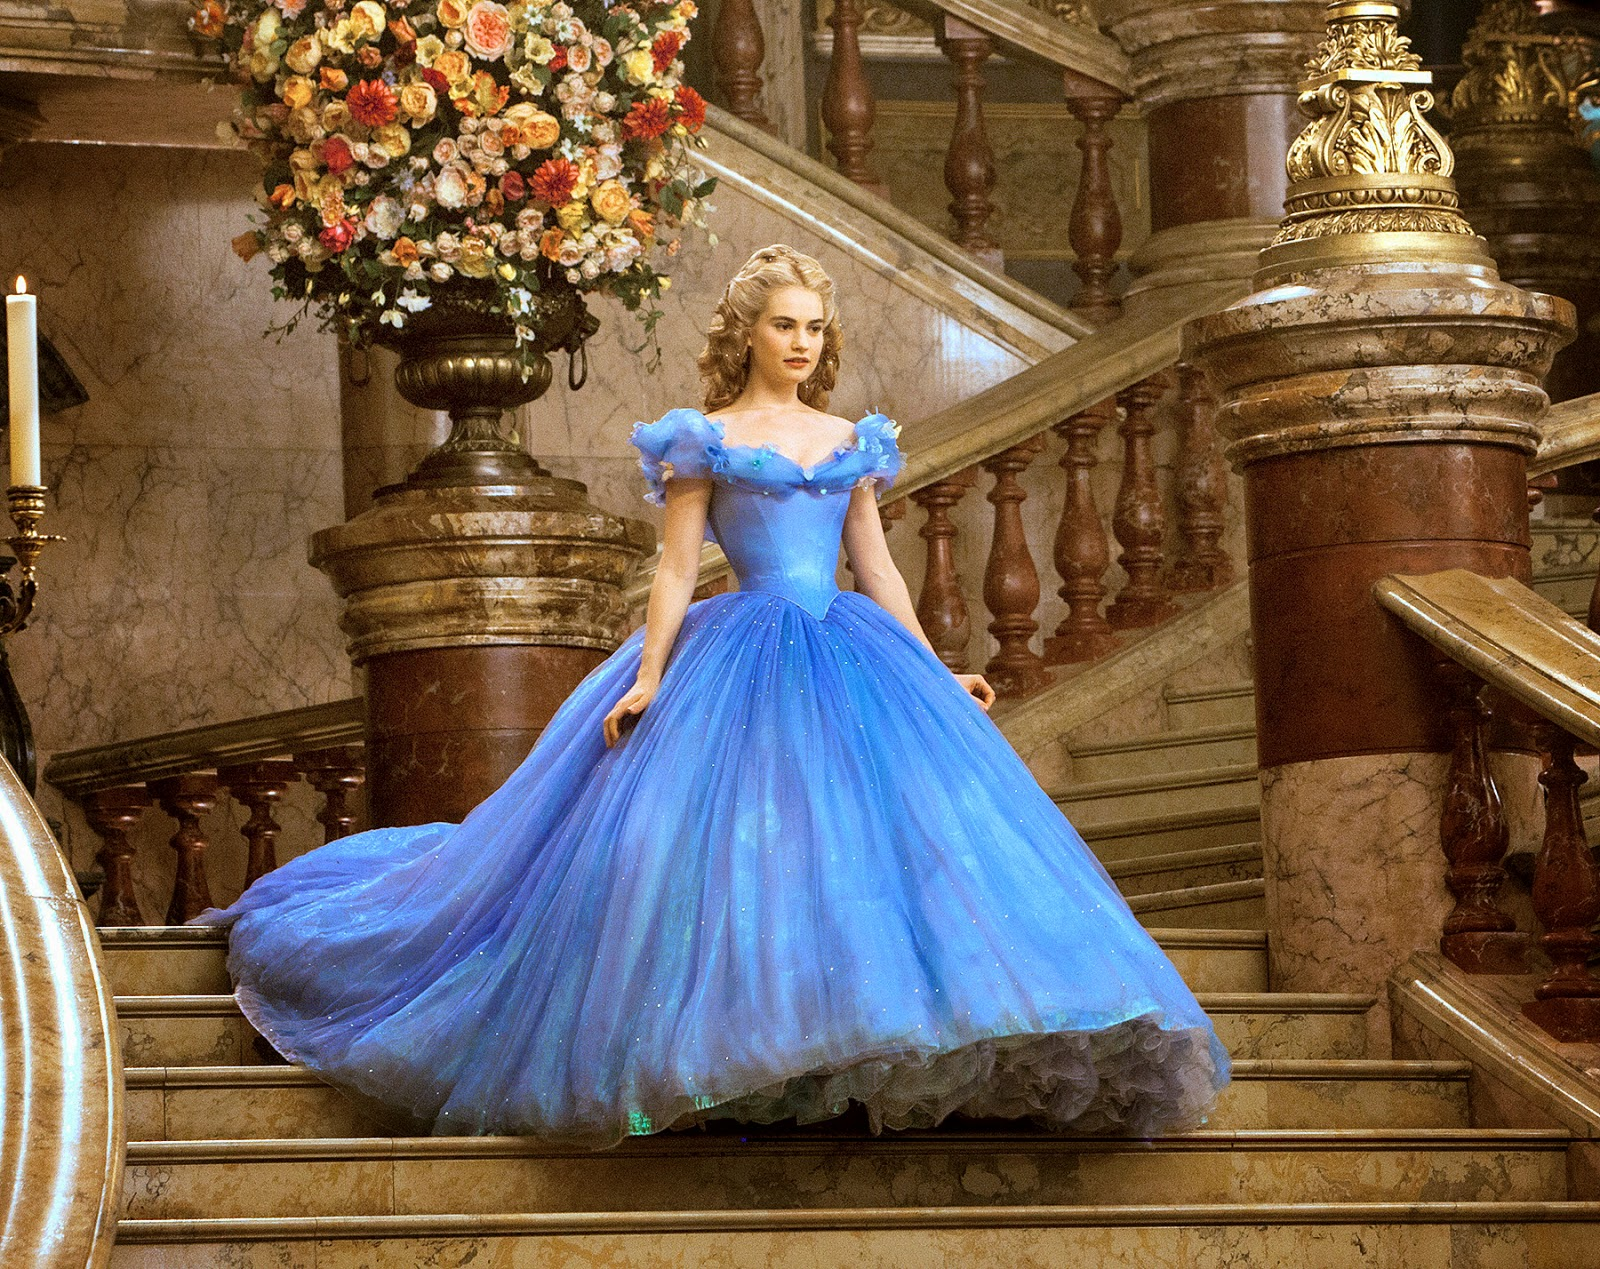 Image of Lily James as Cinderella in Blue Ballgown